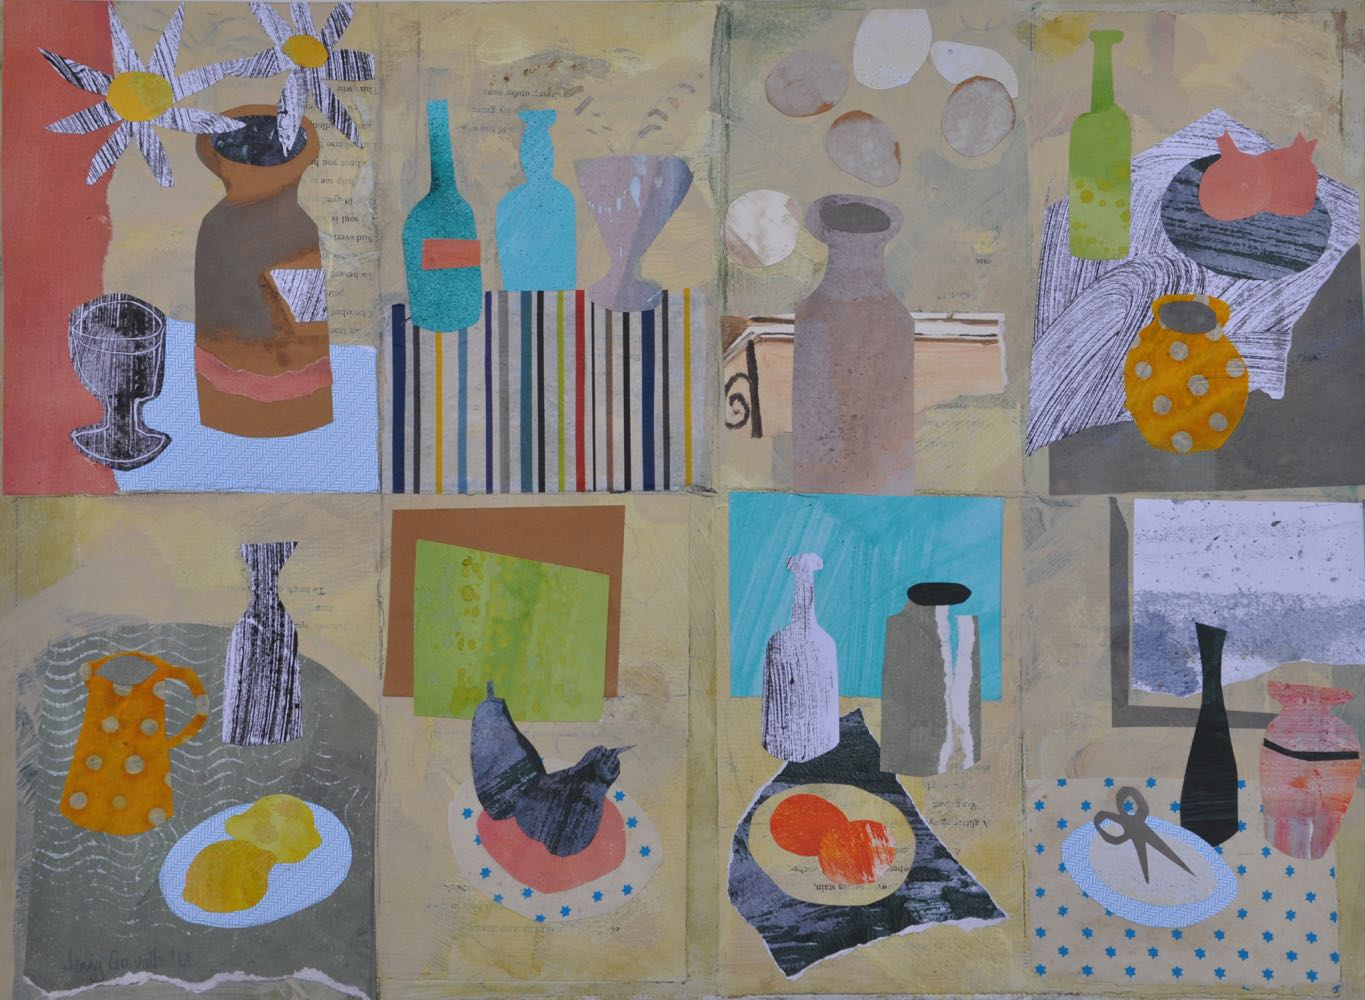 Still life recollections